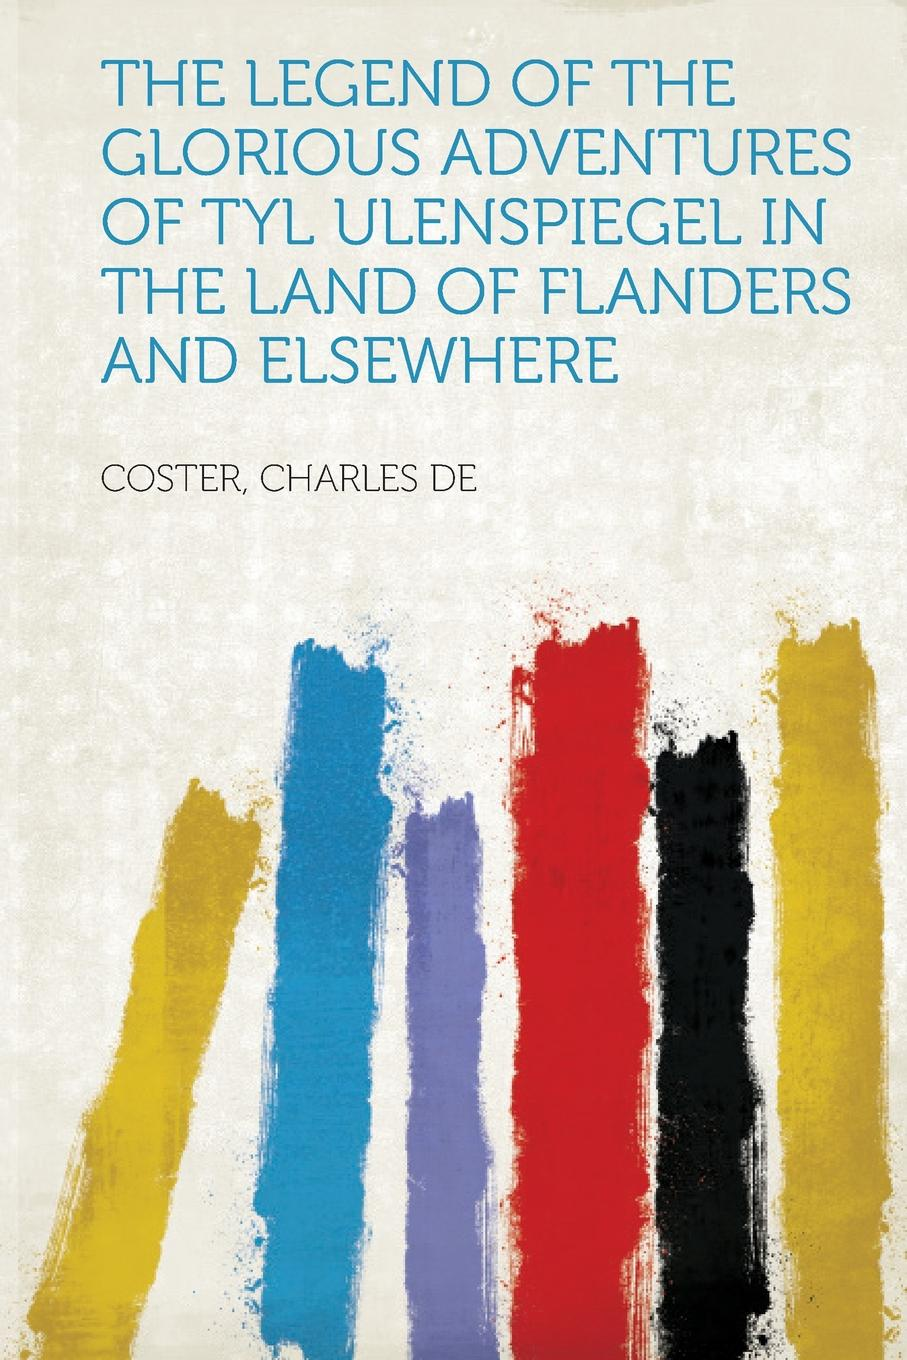 The Legend of the Glorious Adventures of Tyl Ulenspiegel in the land of Flanders and elsewhere de coster charles the legend of ulenspiegel volume 1 of 2